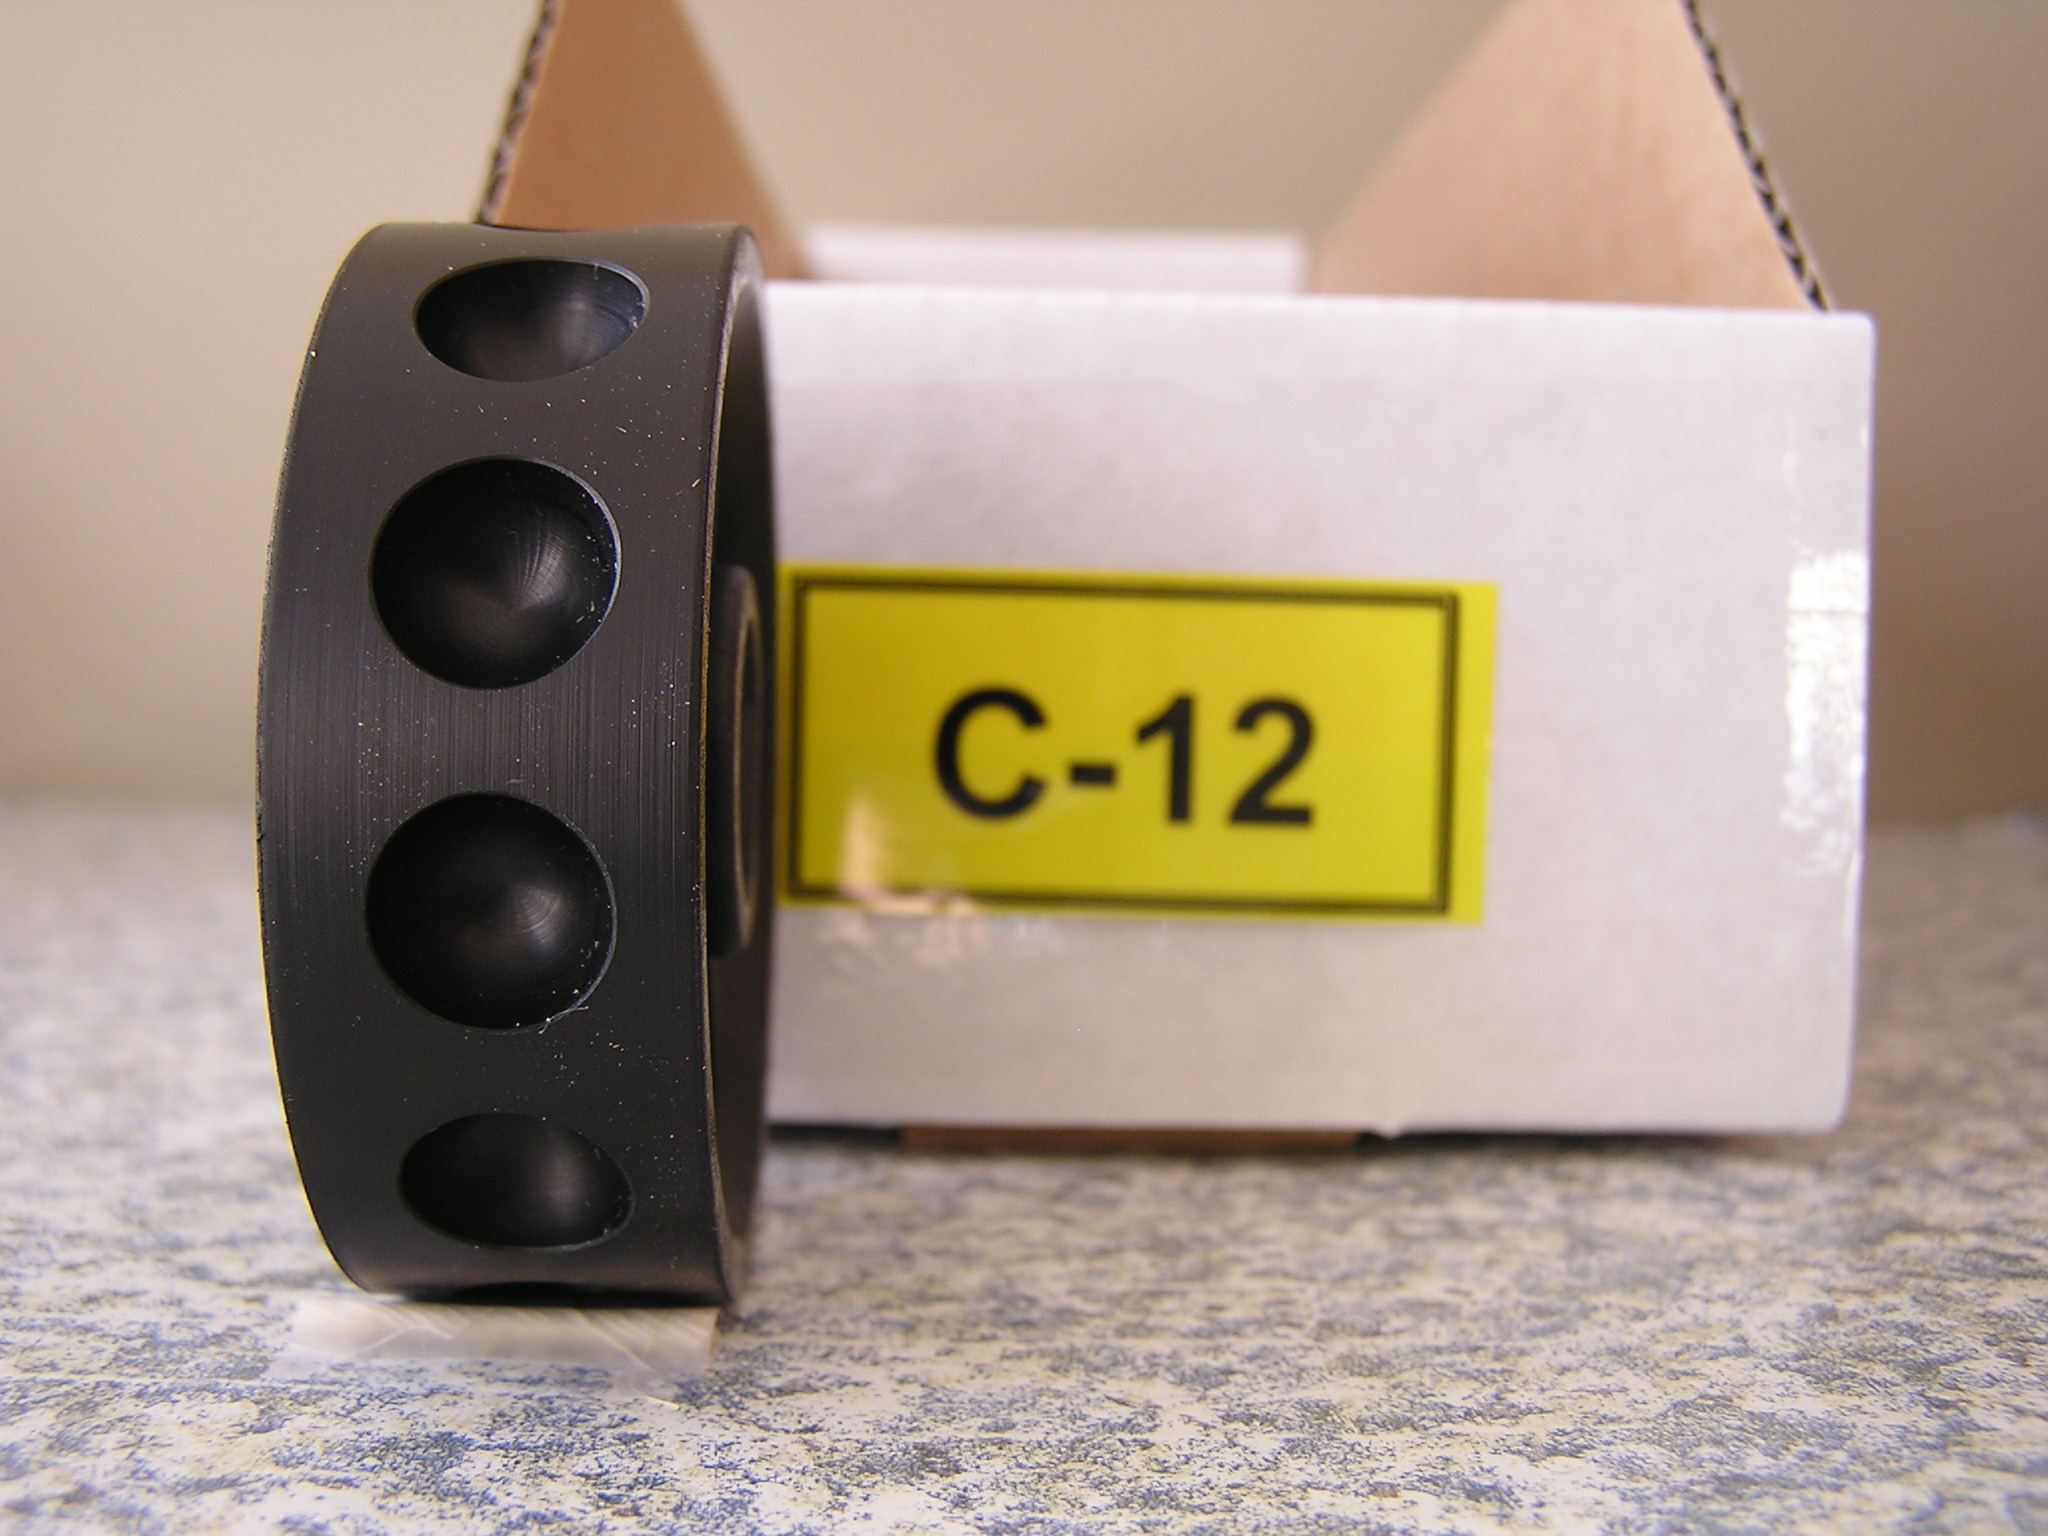 C-12 Roller for the Jang Seeder, 11 mm Slot, 12 Slots on the Roller